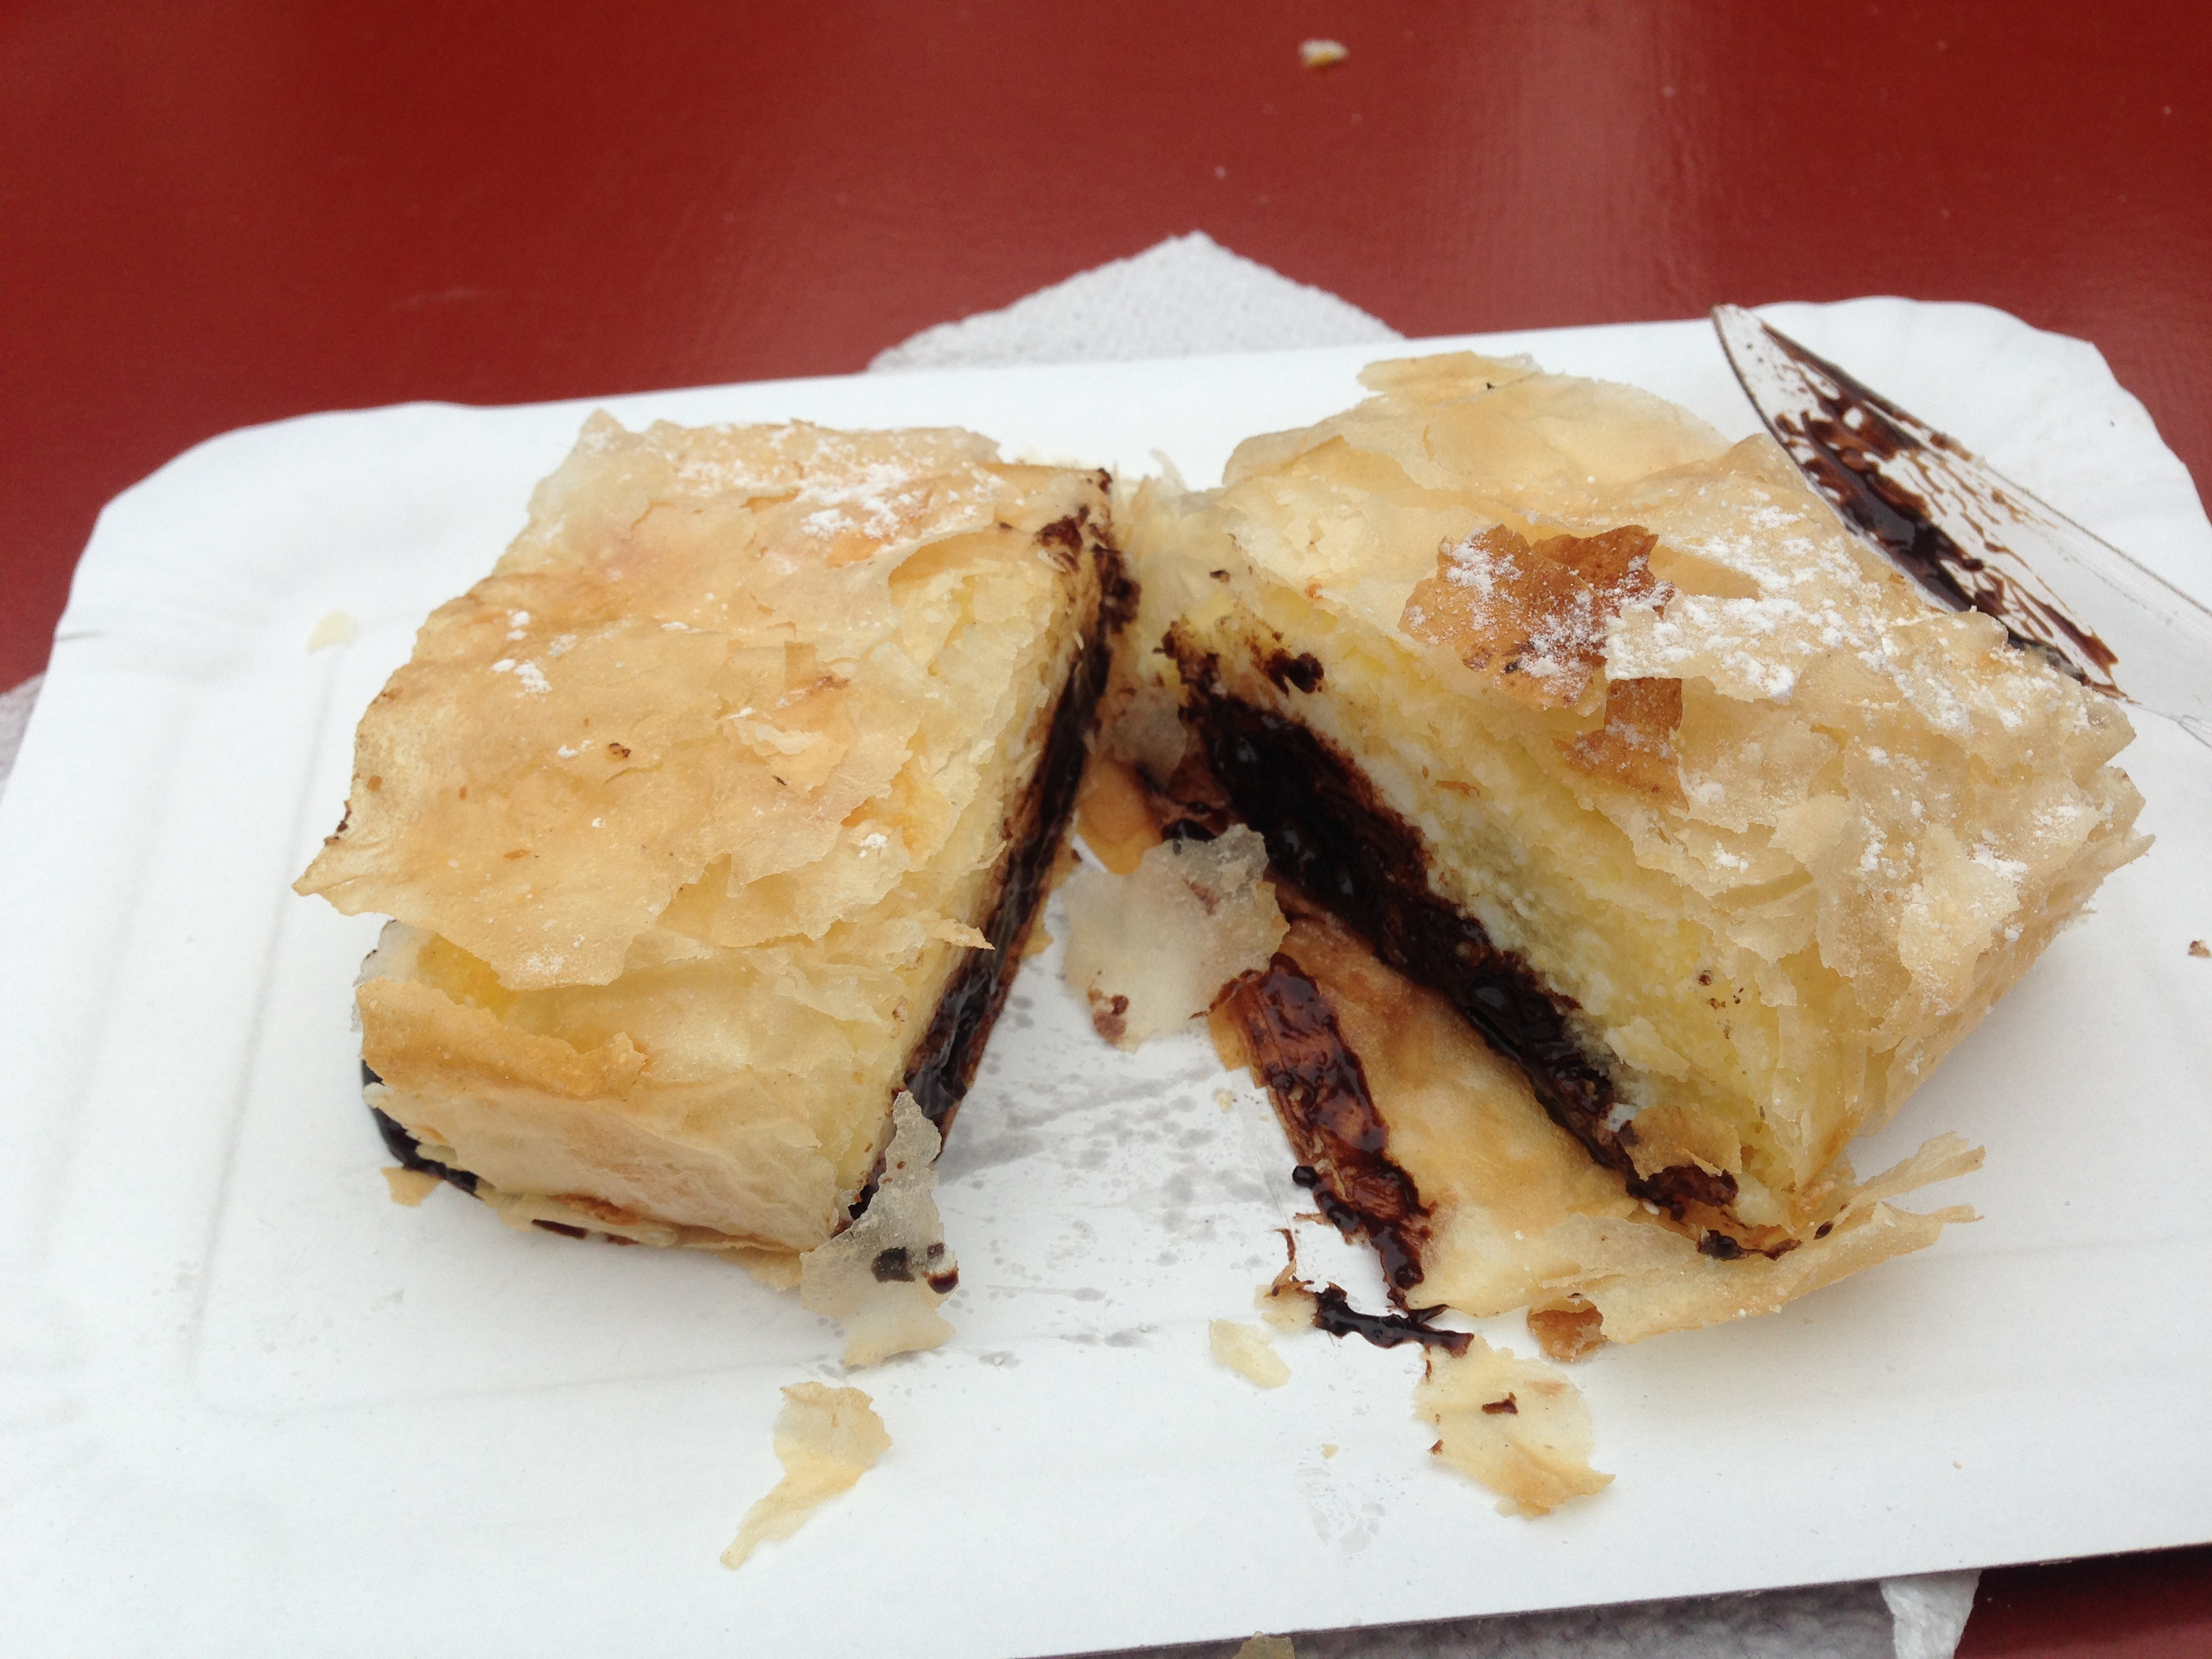 Chocolate and cheese strudel :)